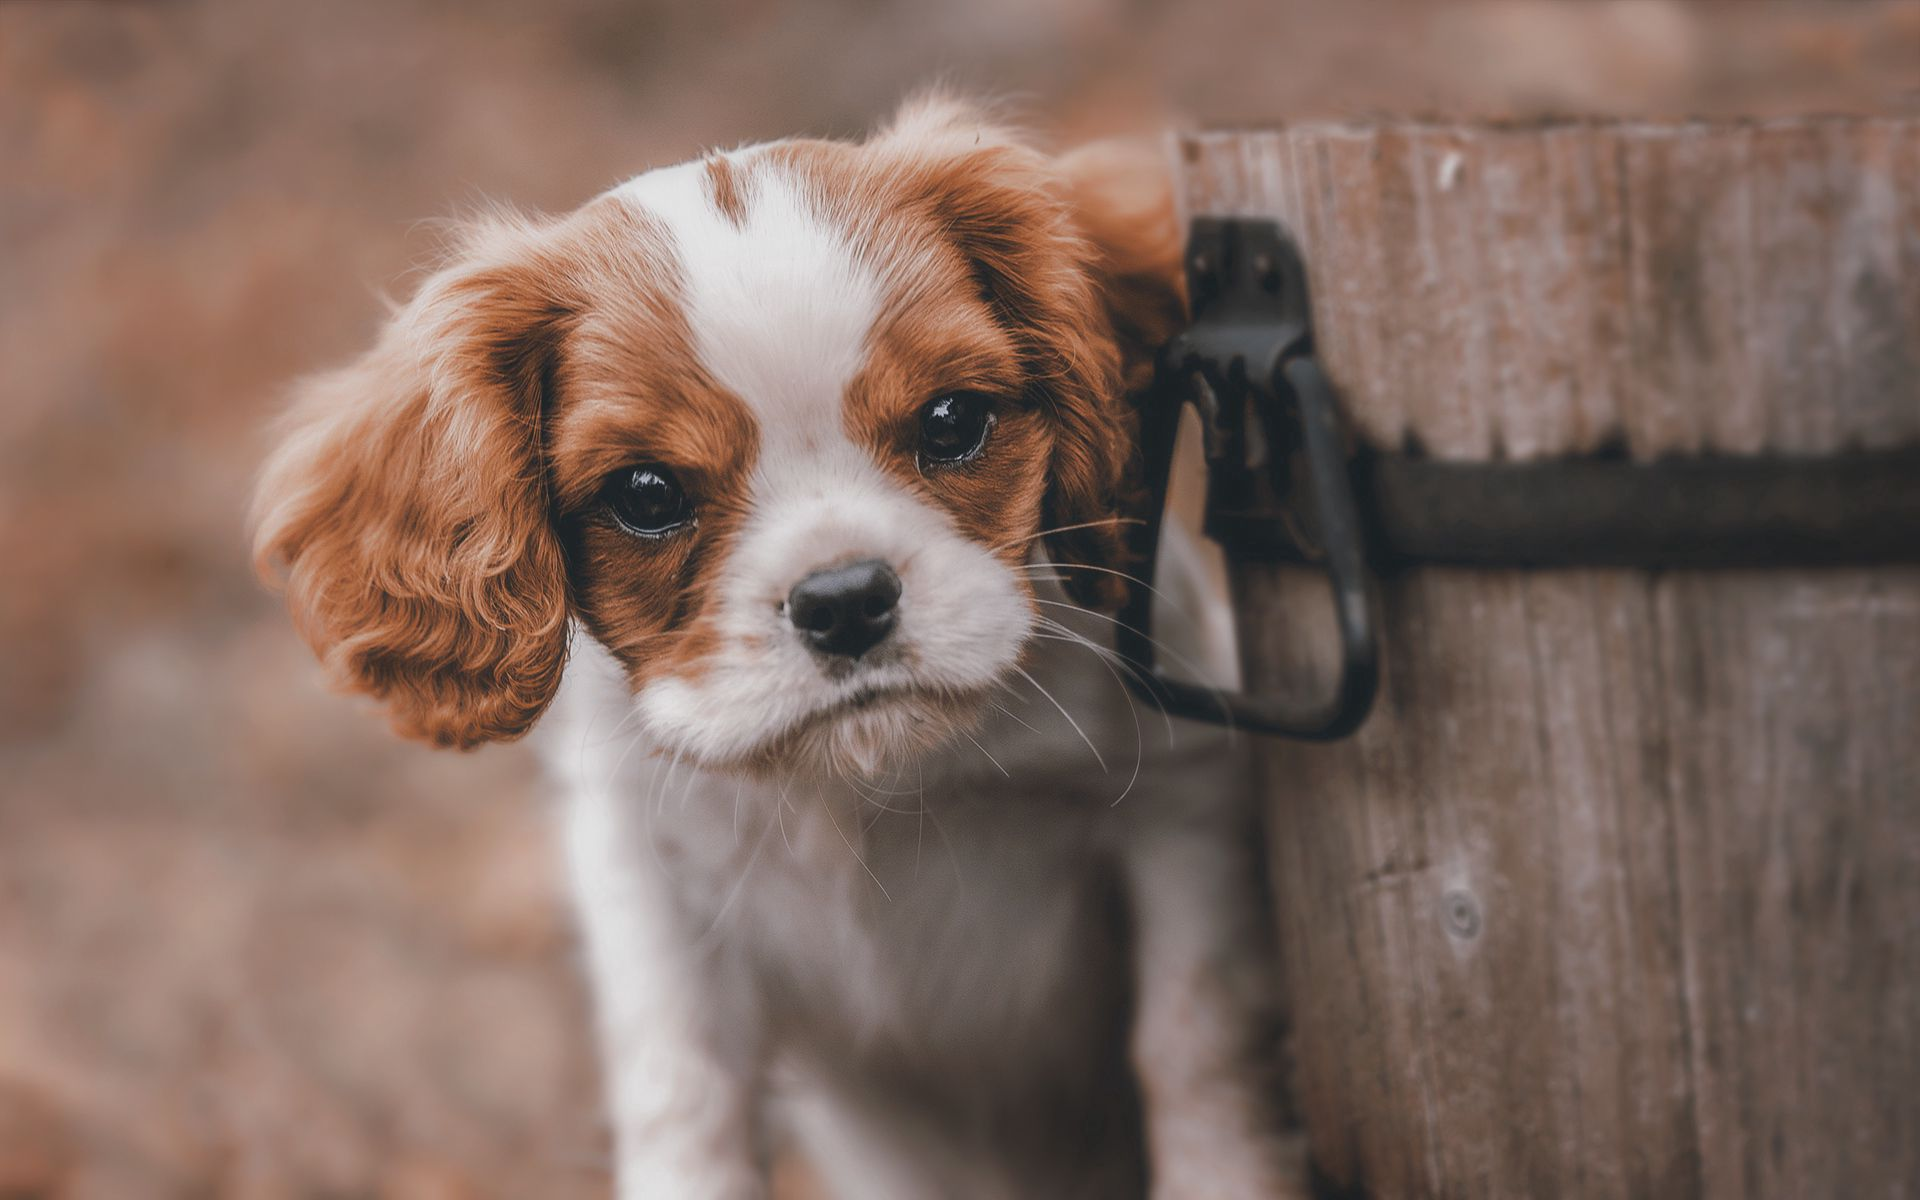 124525 Screensavers and Wallpapers Puppy for phone. Download Animals, Dog, Sight, Opinion, Puppy, Bucket pictures for free